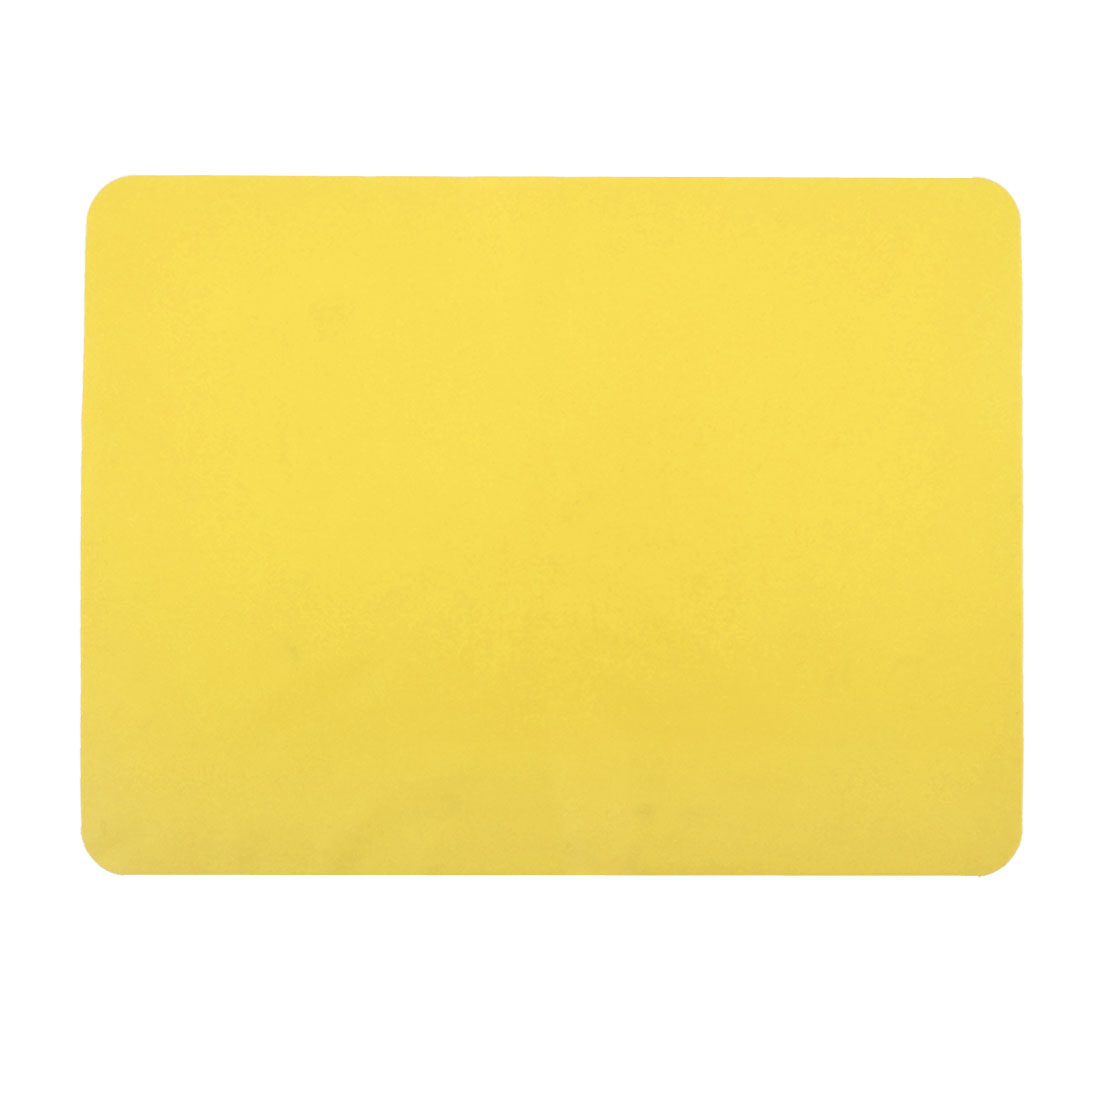 Western Restaurant Silicone Table Heat Resistant Mat Cushion Placemat Yellow